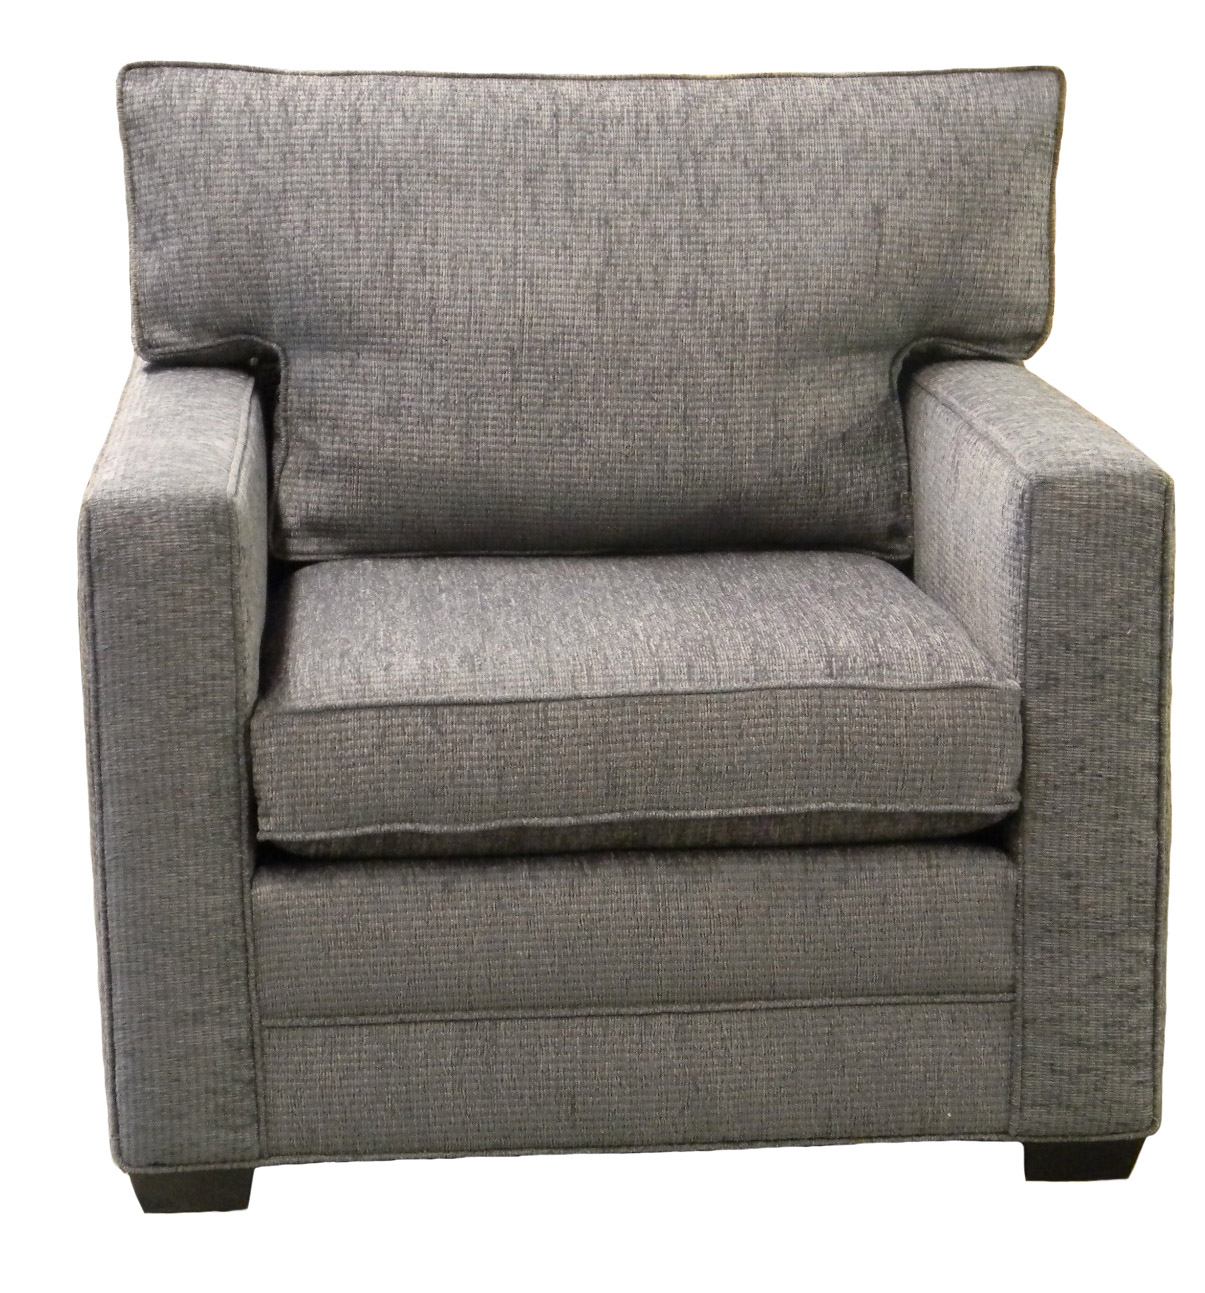 Spenser Chair